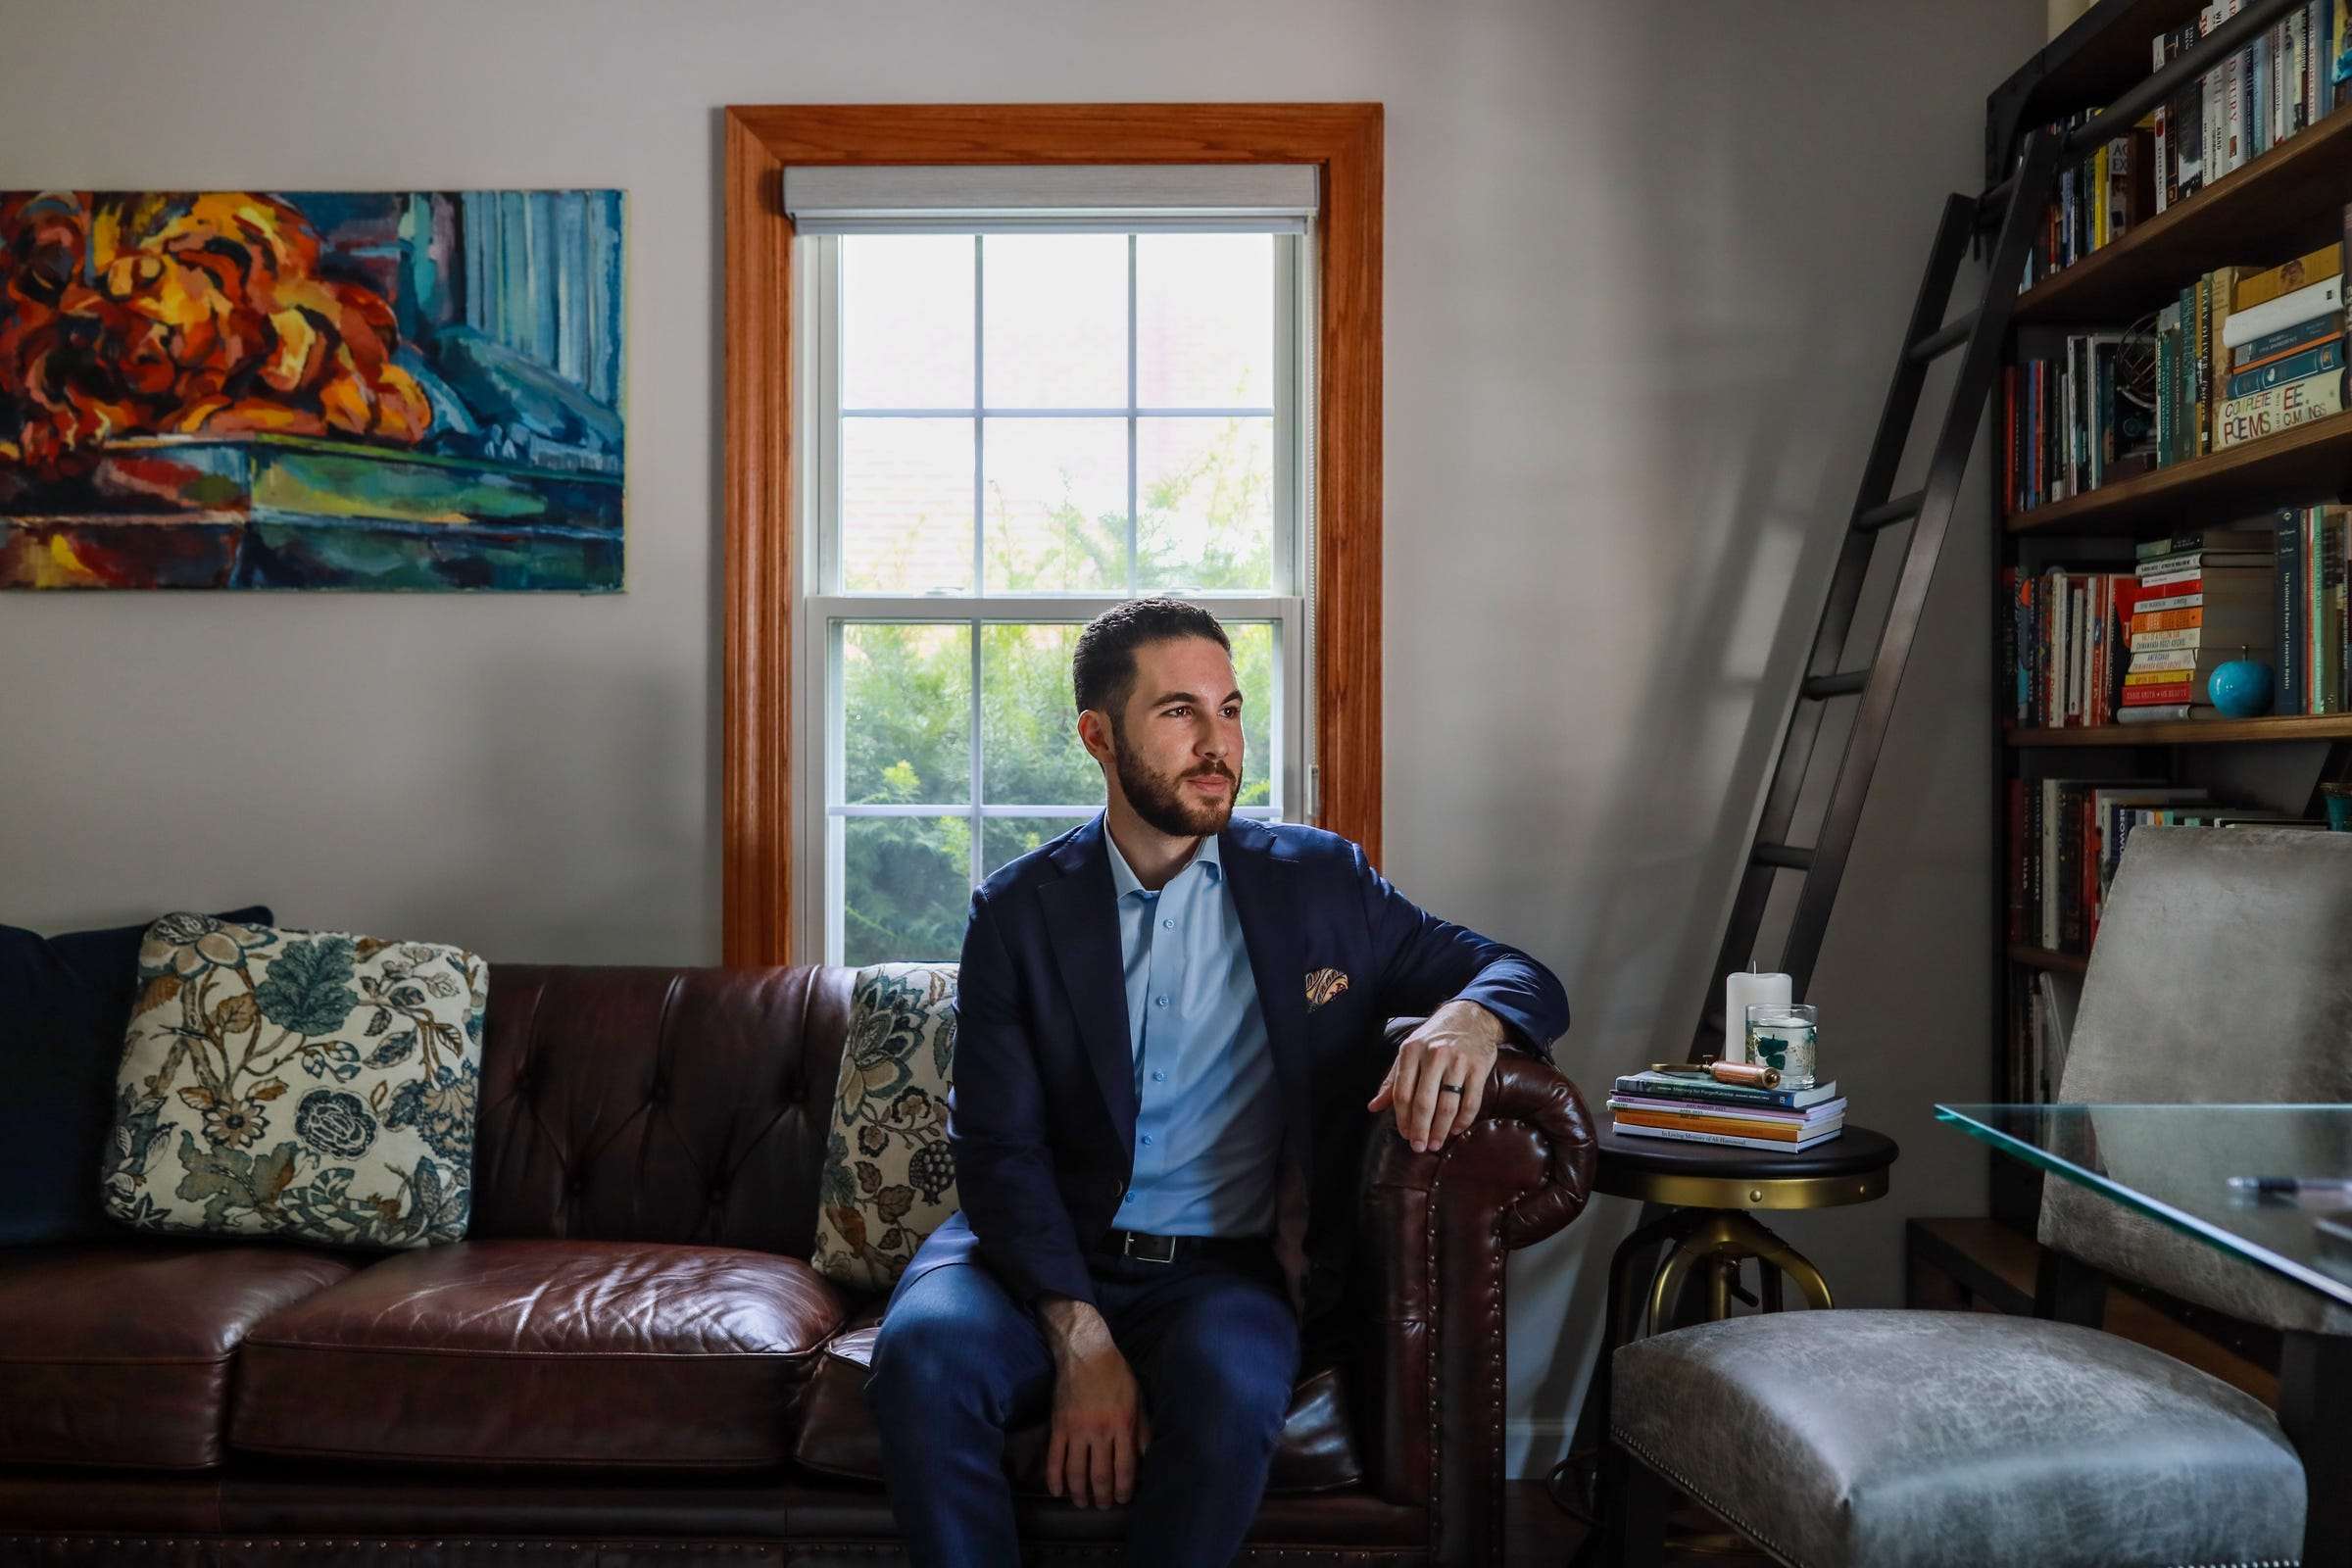 """Abdullah Hammoud, 31, of Dearborn, serves as house representative for the Michigan's 15th District and is now running for mayor of Dearborn. Hammoud, who is Lebanese, believes the community should be united, to combat Islamaphobia. """"We've built enough bridges and allies to where it lessens the burden, where if there's an issue that impacts the Muslim American community, the Arab American community, people aren't waiting for the Muslim or Arab American to speak out,"""" said Hammoud, """"They have the knowledge, they have the relationships to also stand up and speak up because, ultimately, many of these issues are humanitarian issues."""